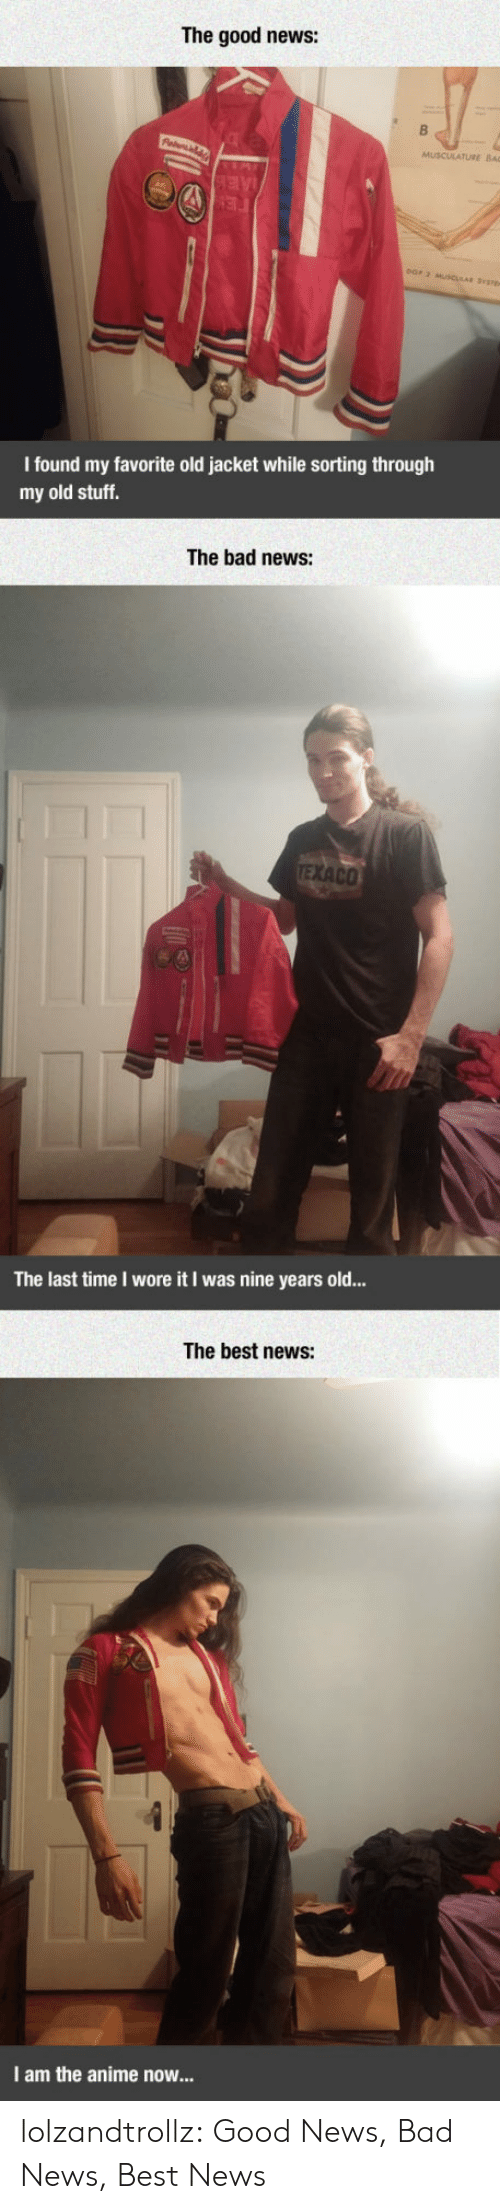 Muscular: The good news:  AE  FE  eOr 2 MUSCULAR SYt  I found my favorite old jacket while sorting through  my old stuff.  The bad news:  TEXACO  The last time I wore it I was nine years old...  The best news:  I am the anime now... lolzandtrollz:  Good News, Bad News, Best News